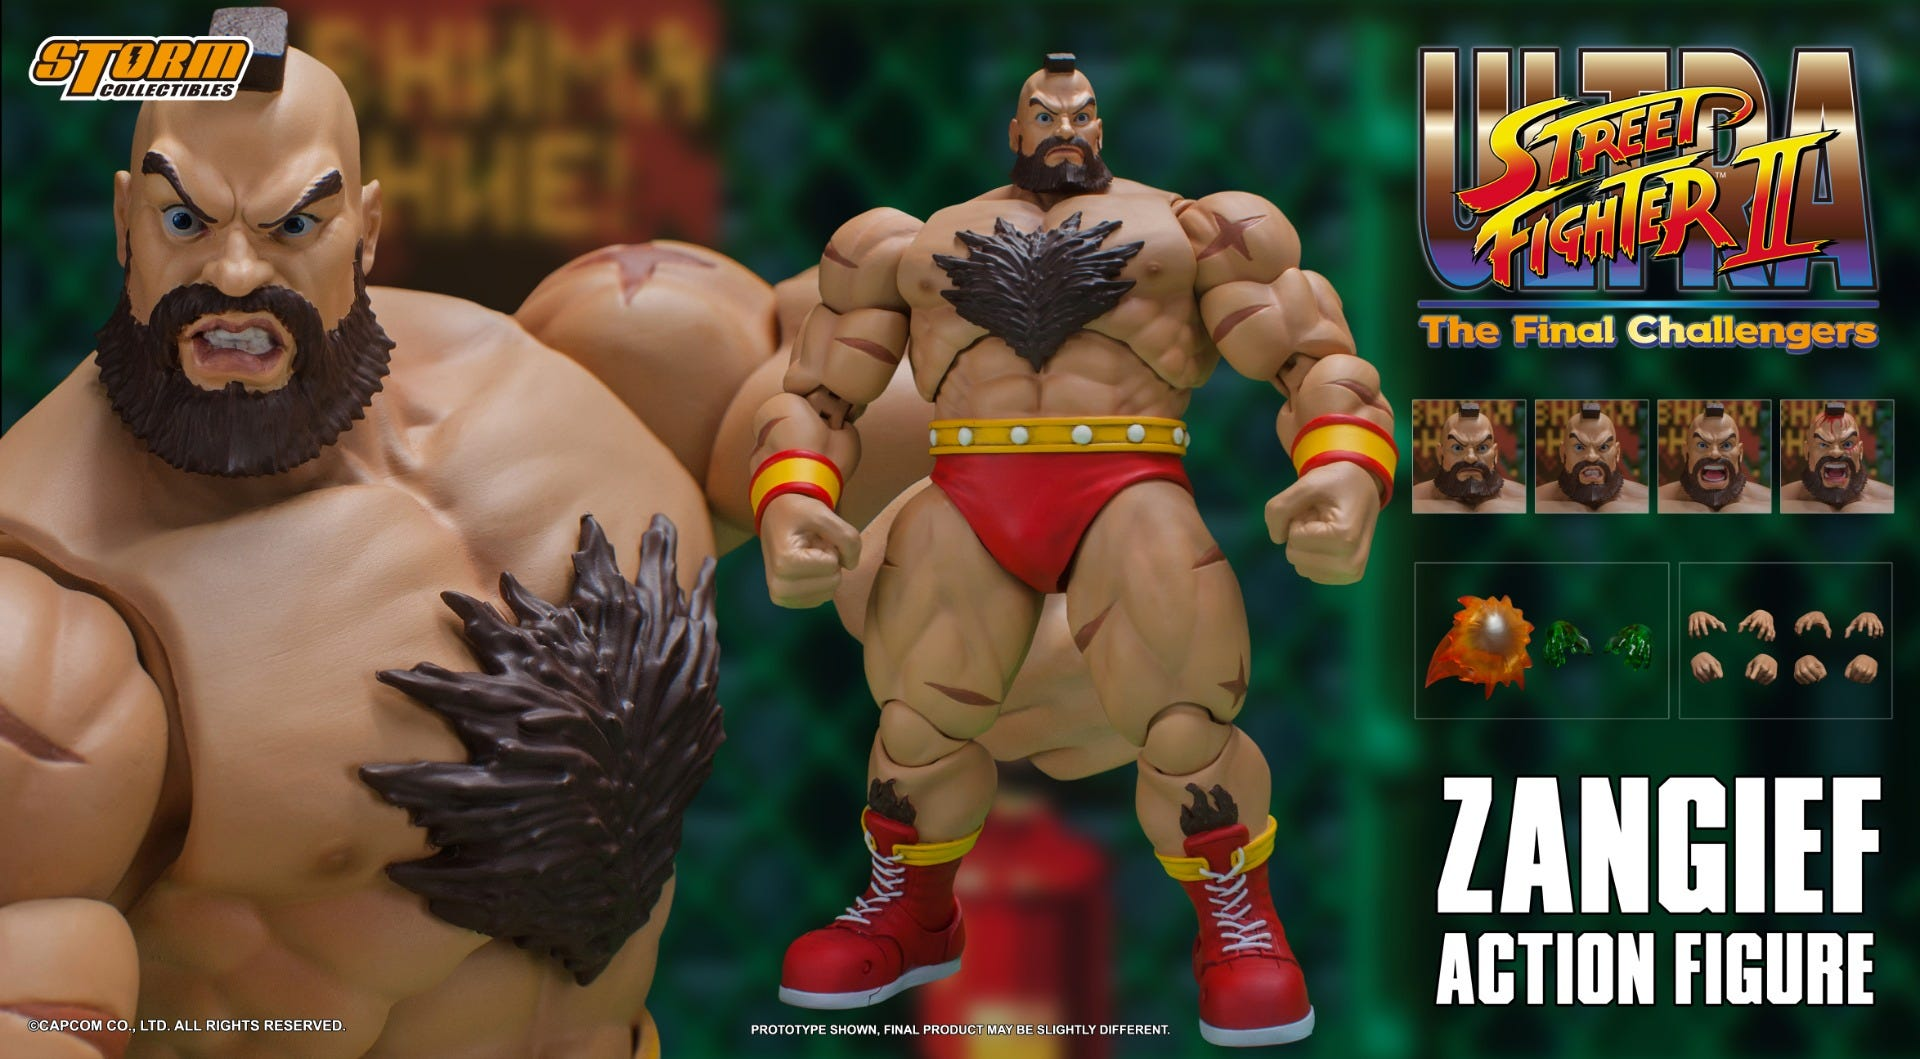 """Storm Collectibles Zangief """"Ultimate Street Fighter II: The Final Challenger"""" Action Figure"""